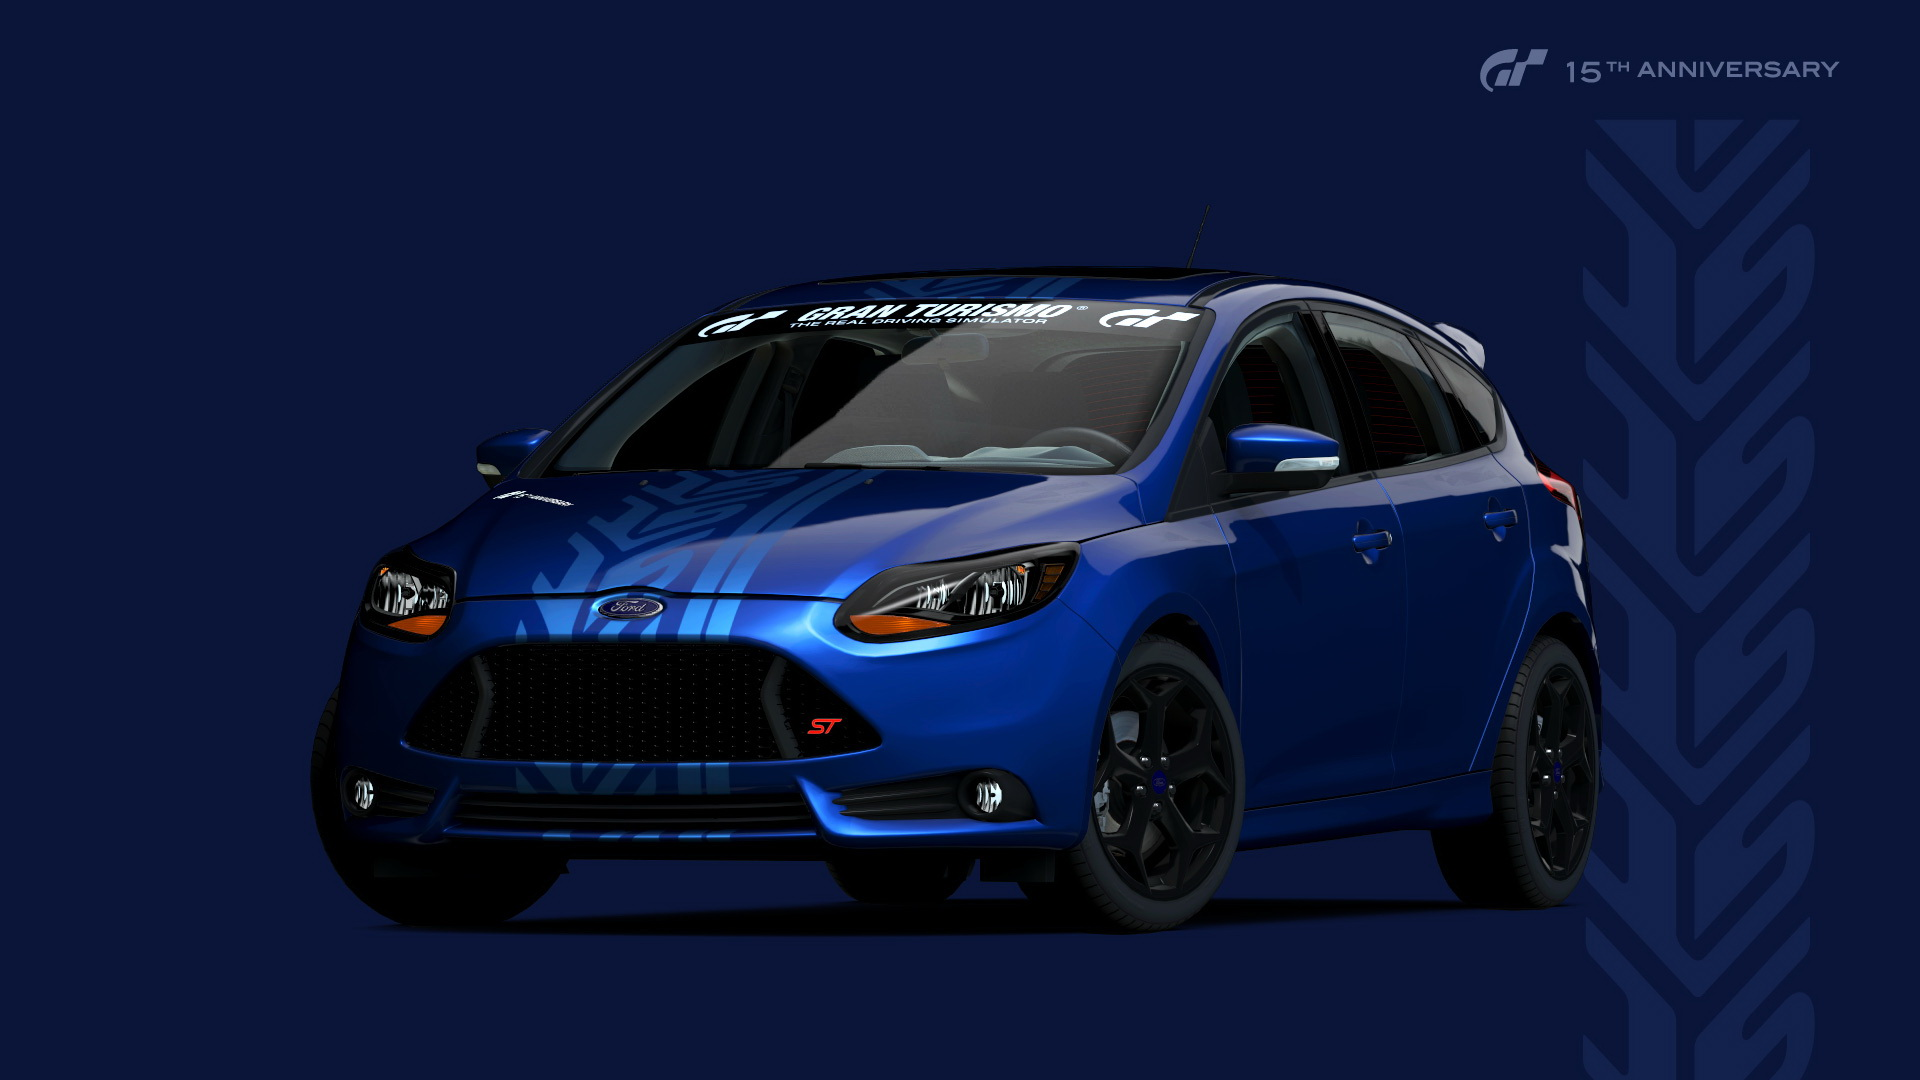 「Ford Focus ST 15th Anniversary Edition」